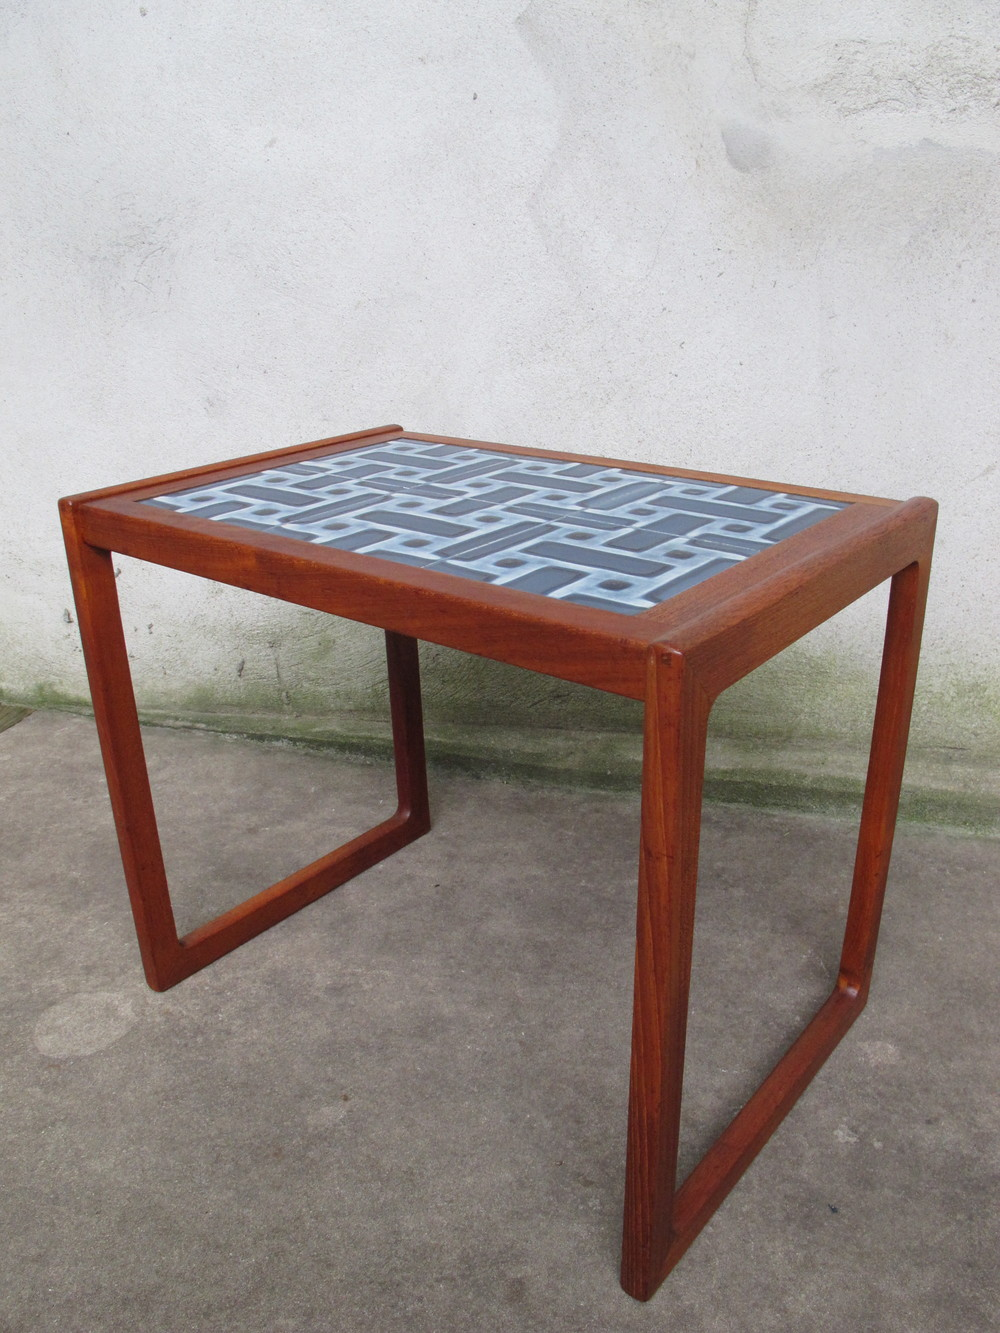 DANISH TEAK TILE TOP SIDE TABLE BY JASON